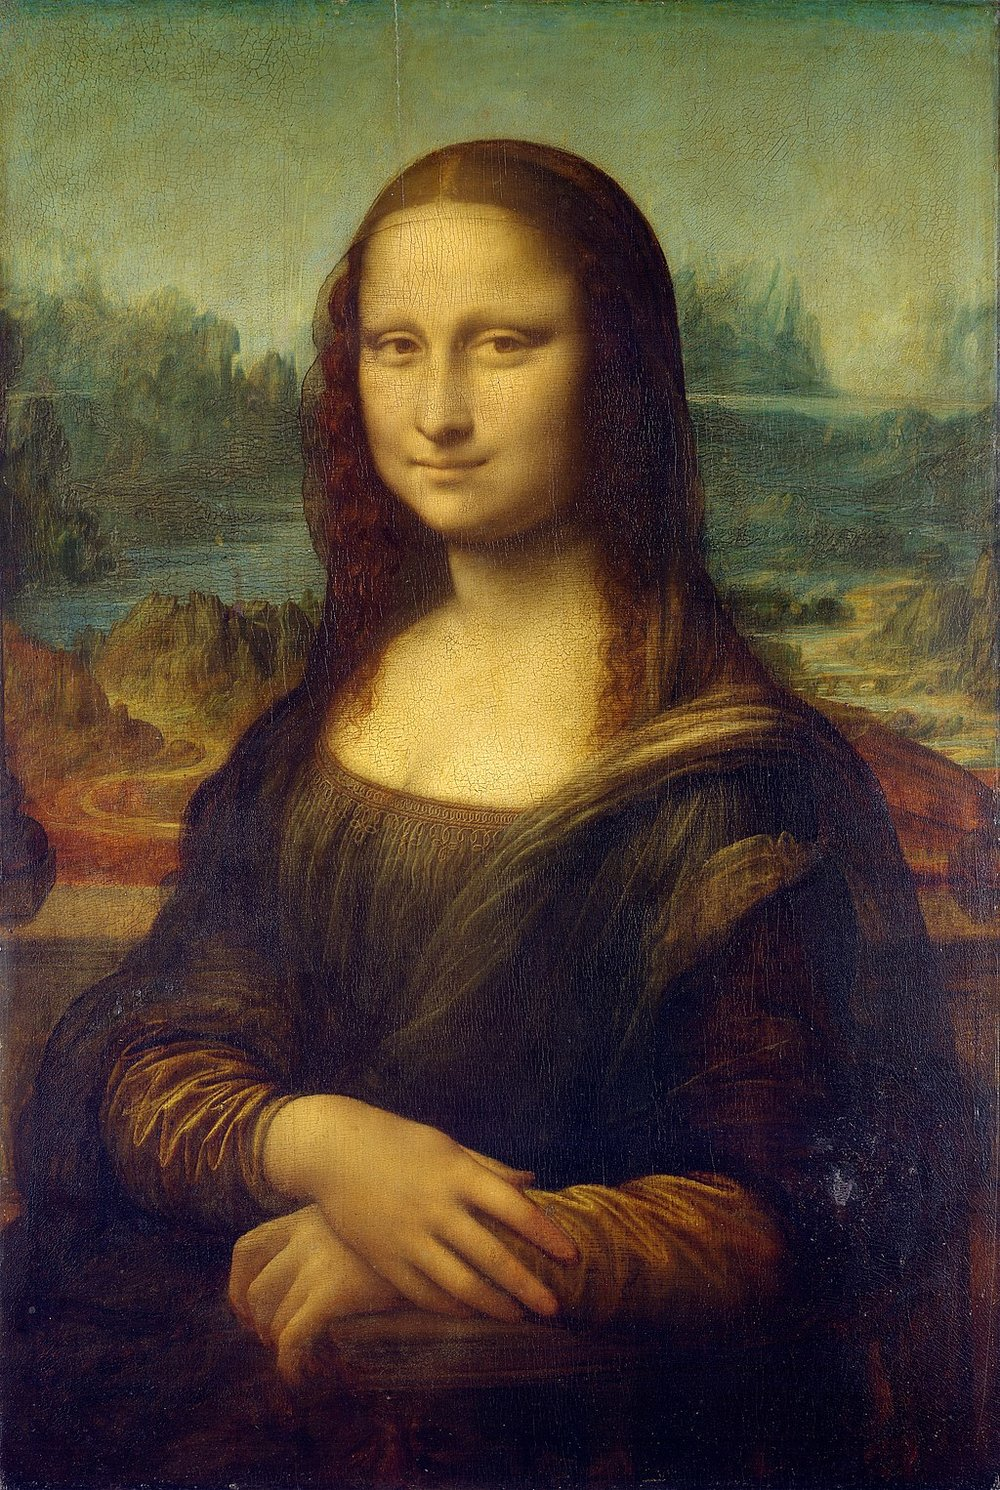 1024px-Mona_Lisa,_by_Leonardo_da_Vinci,_from_C2RMF_retouched.jpg